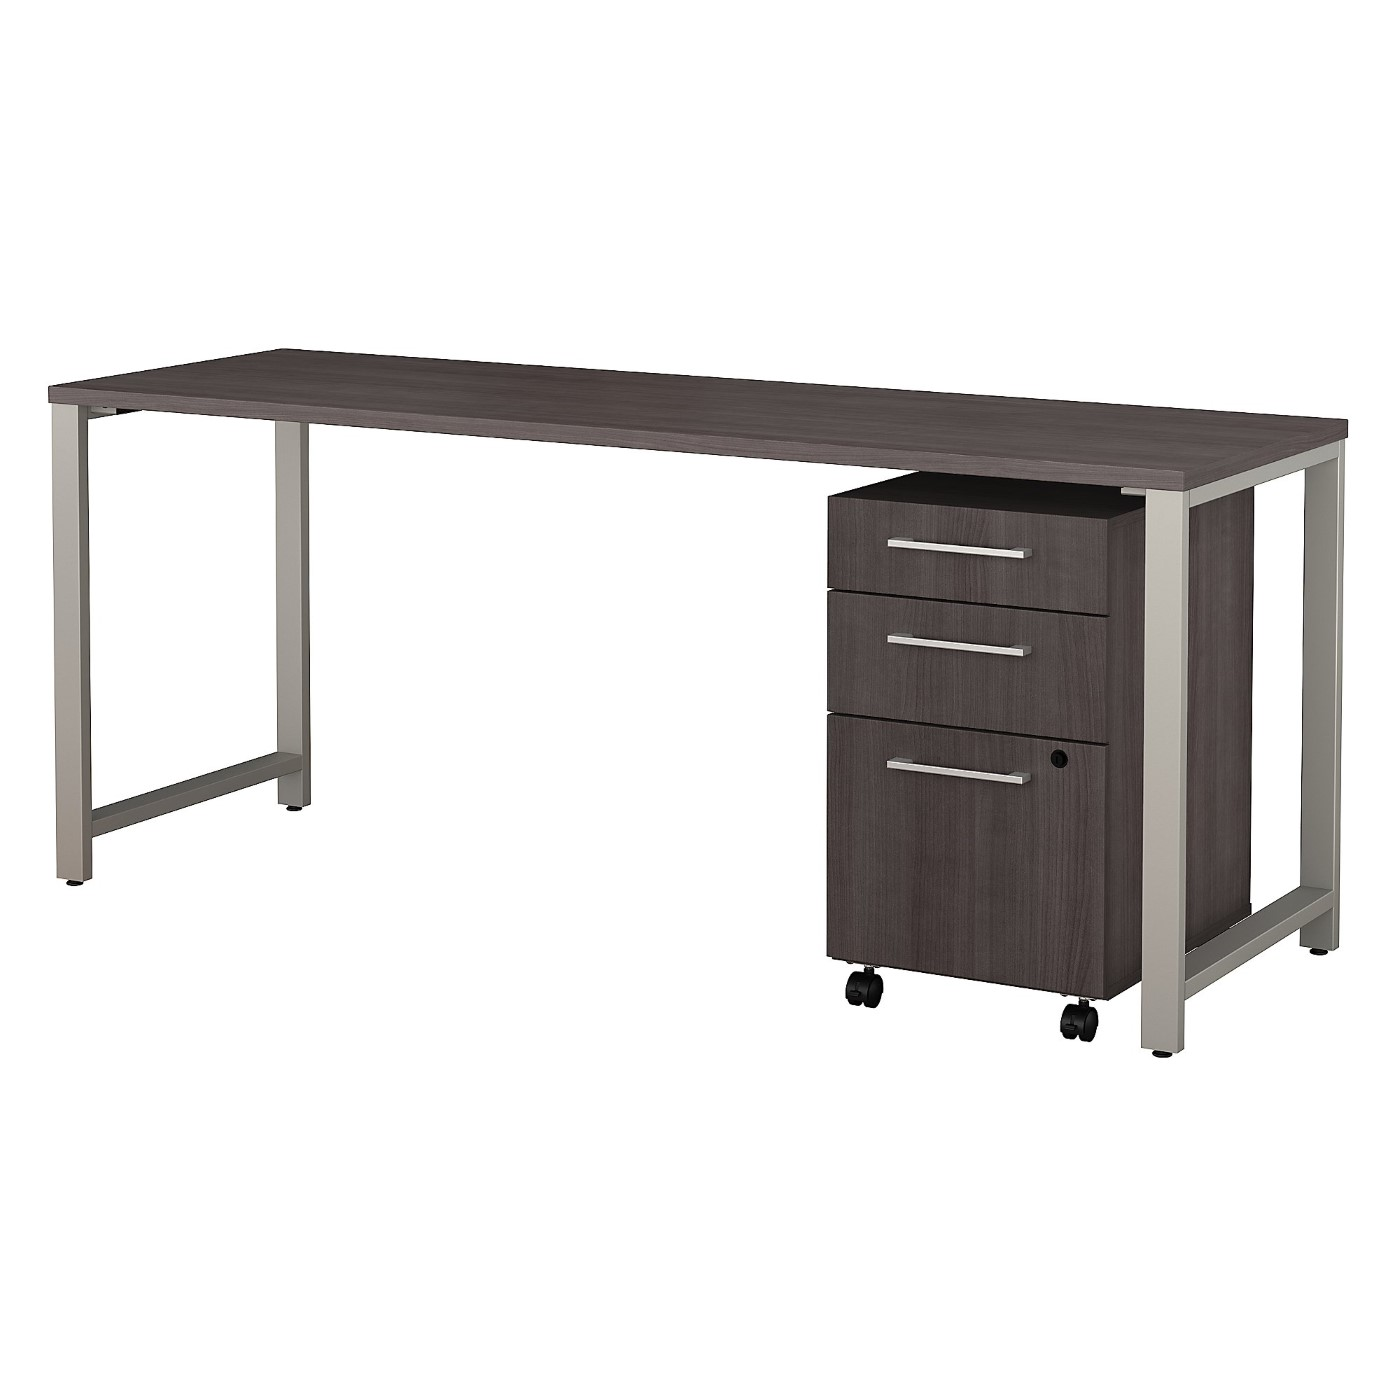 BUSH BUSINESS FURNITURE 400 SERIES 72W X 24D TABLE DESK WITH 3 DRAWER MOBILE FILE CABINET. FREE SHIPPING SALE DEDUCT 10% MORE ENTER '10percent' IN COUPON CODE BOX WHILE CHECKING OUT.